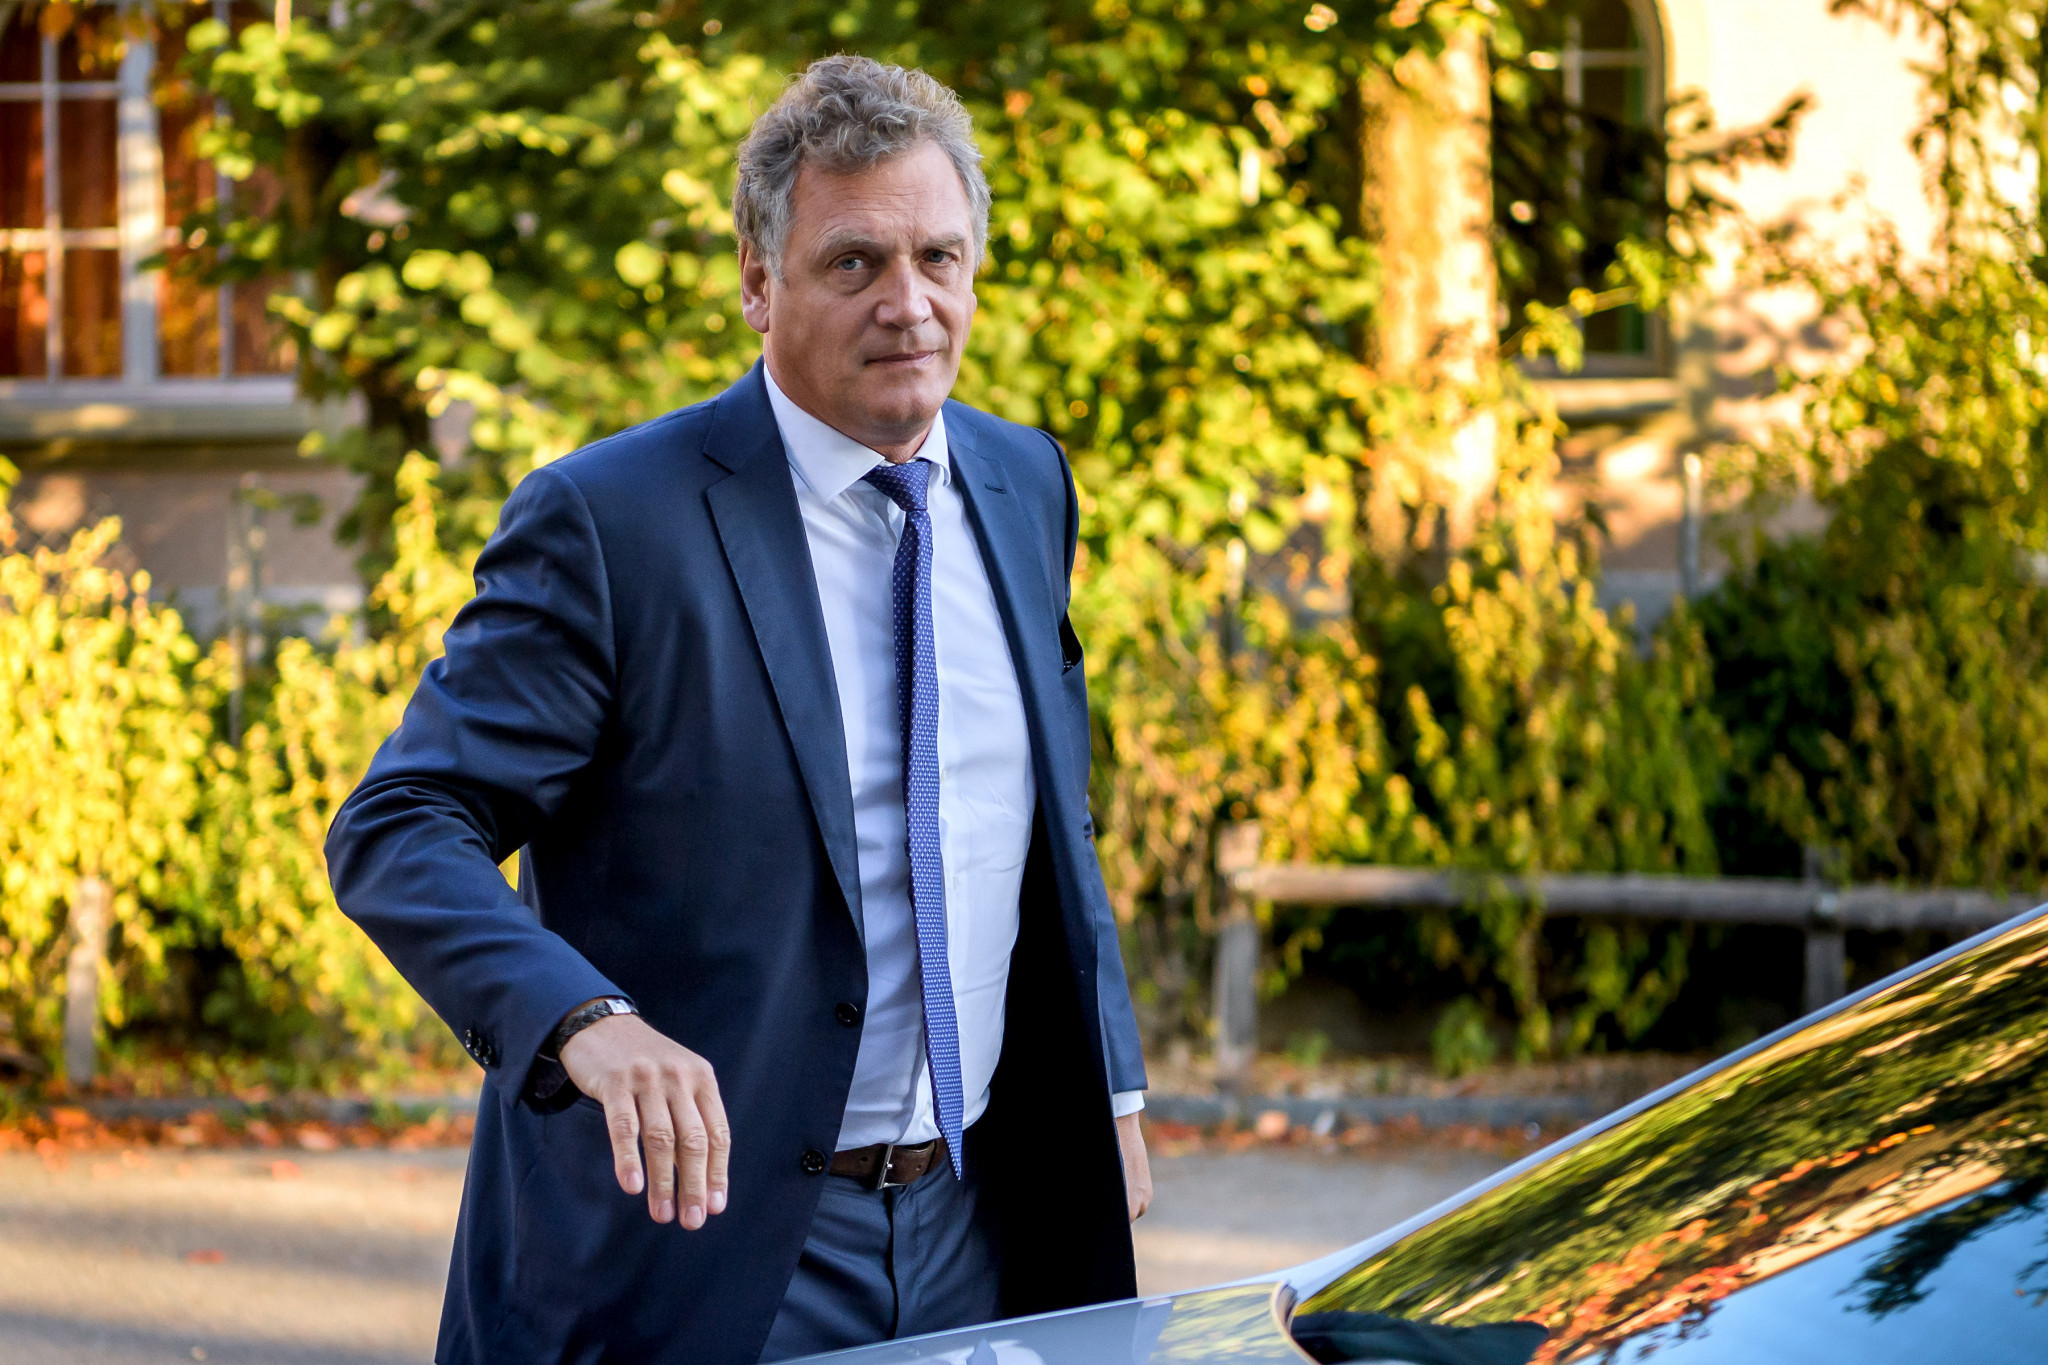 Jérôme Valcke has been accused of accepting bribes, several counts of aggravated criminal mismanagement and falsification of documents ©Getty Images